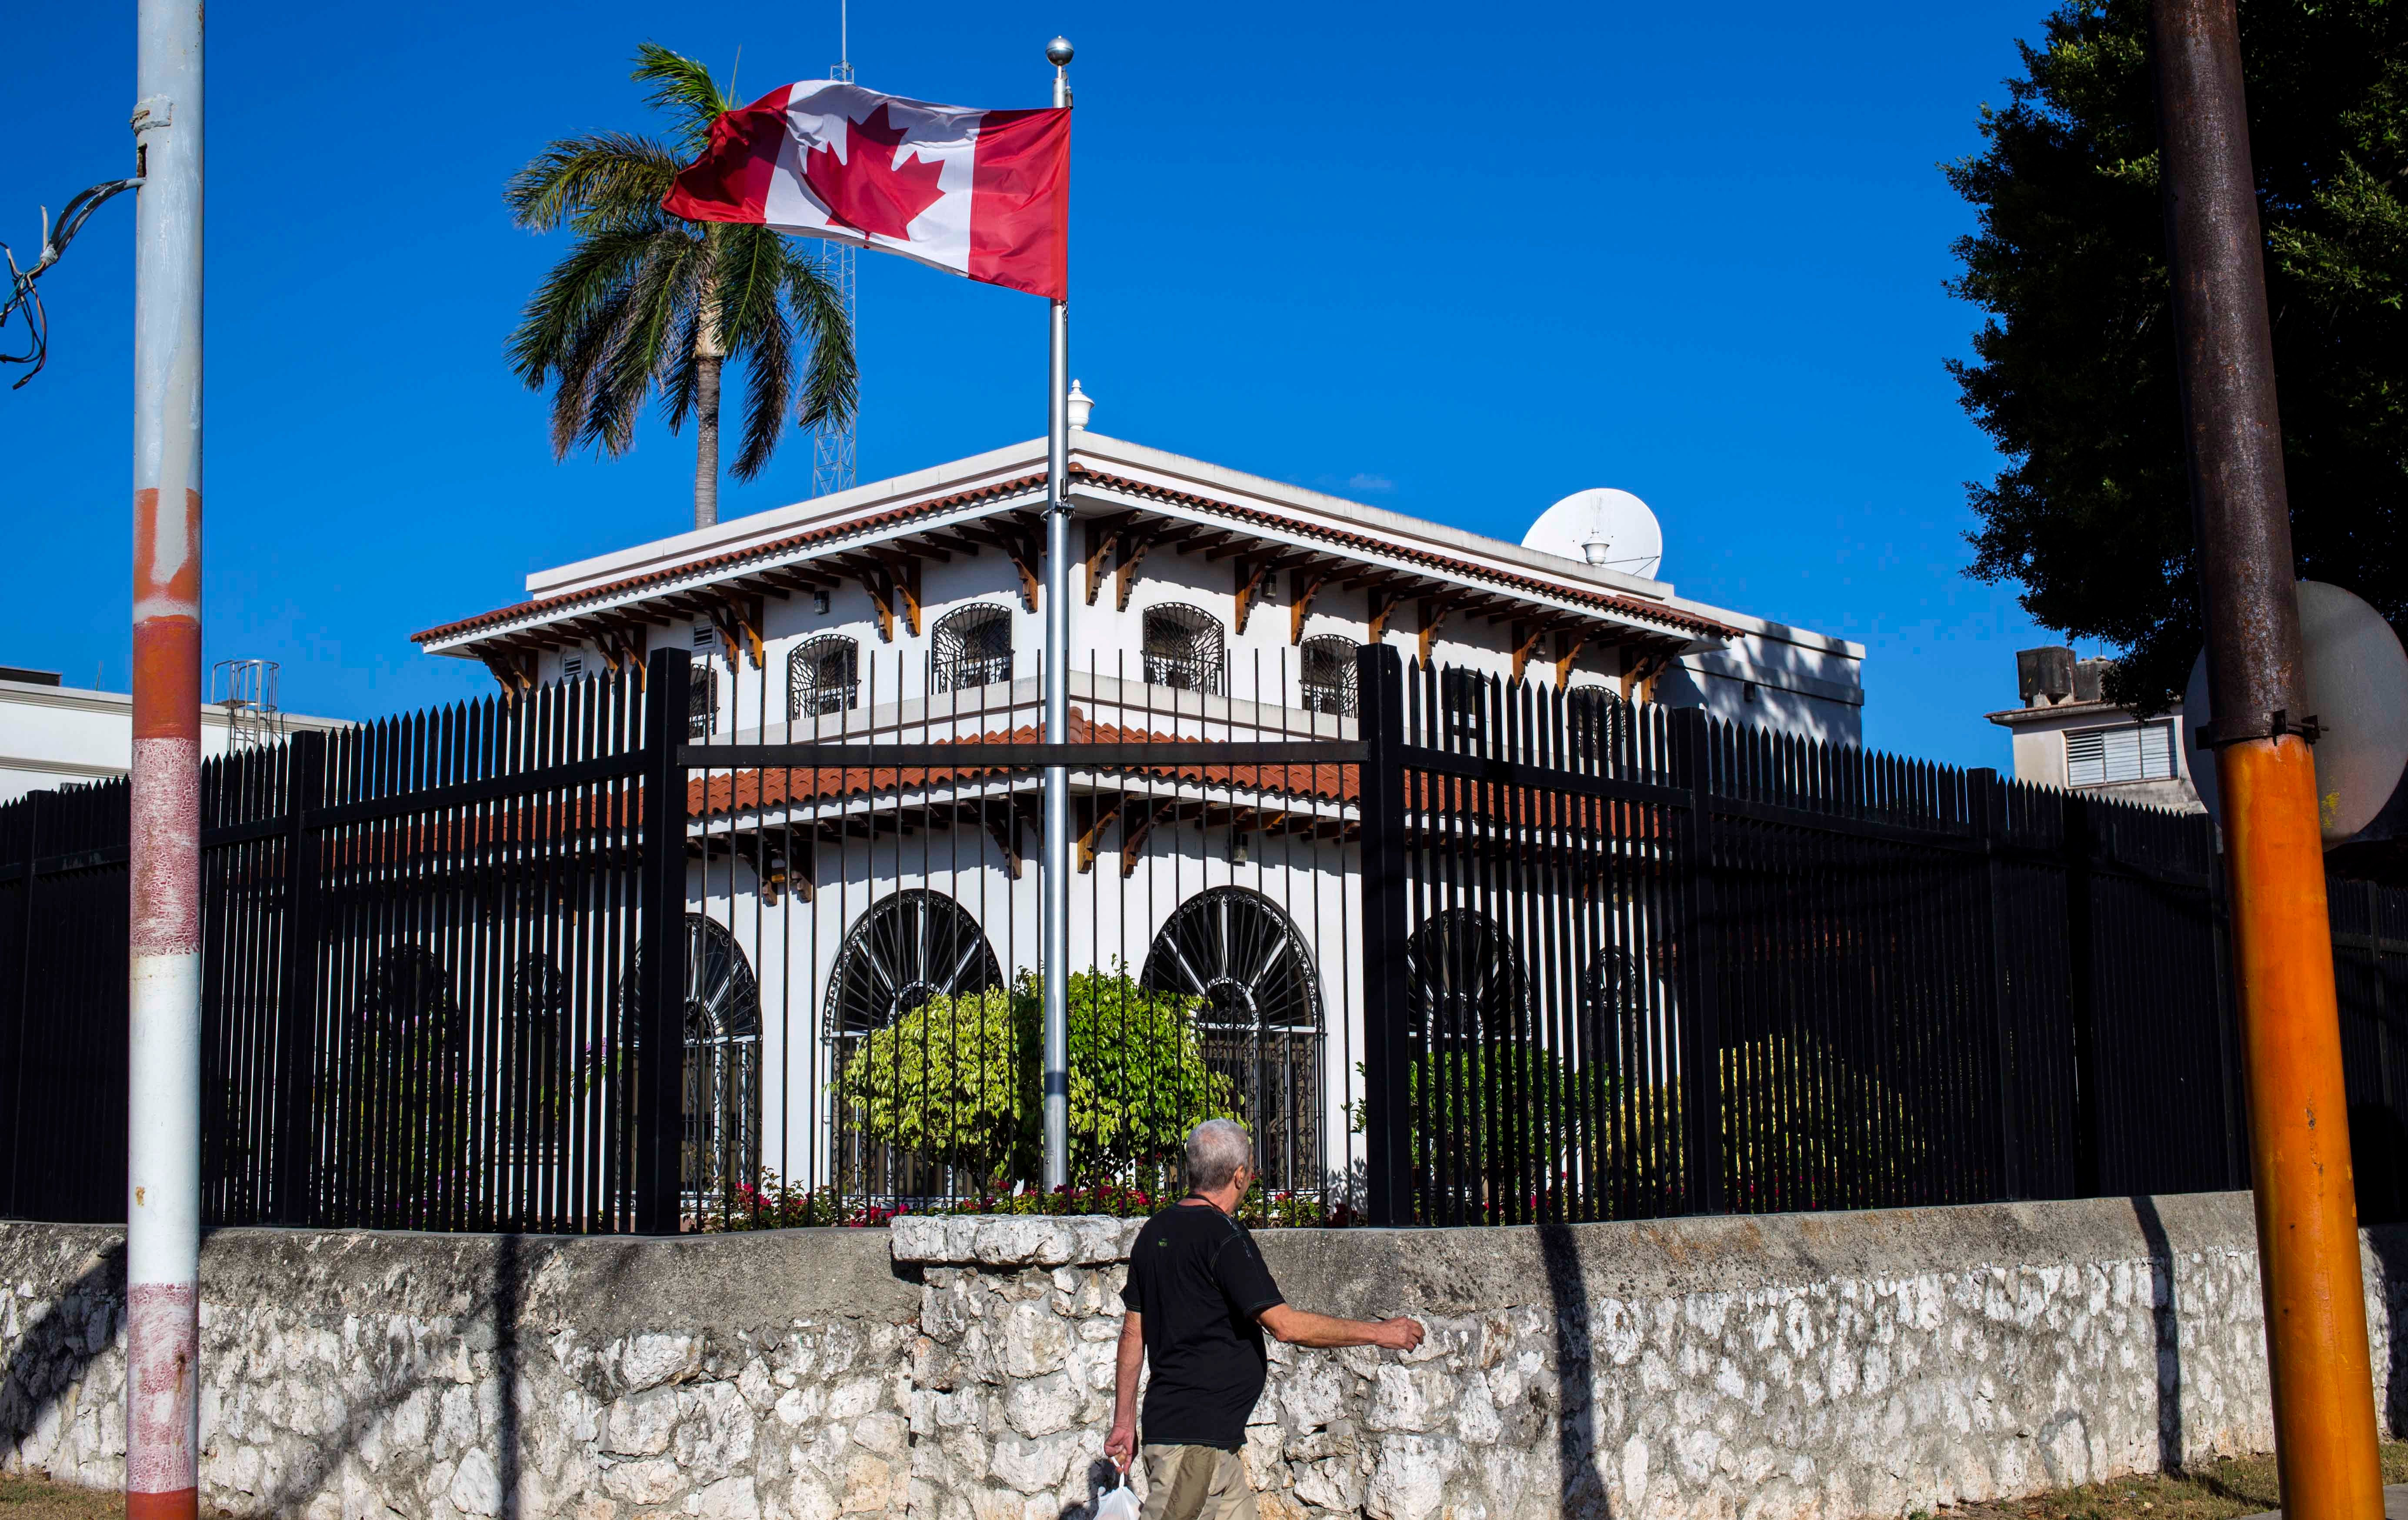 Canada To Cut Diplomatic Staff In Cuba By Up To Half After 14th Diplomat Falls Ill